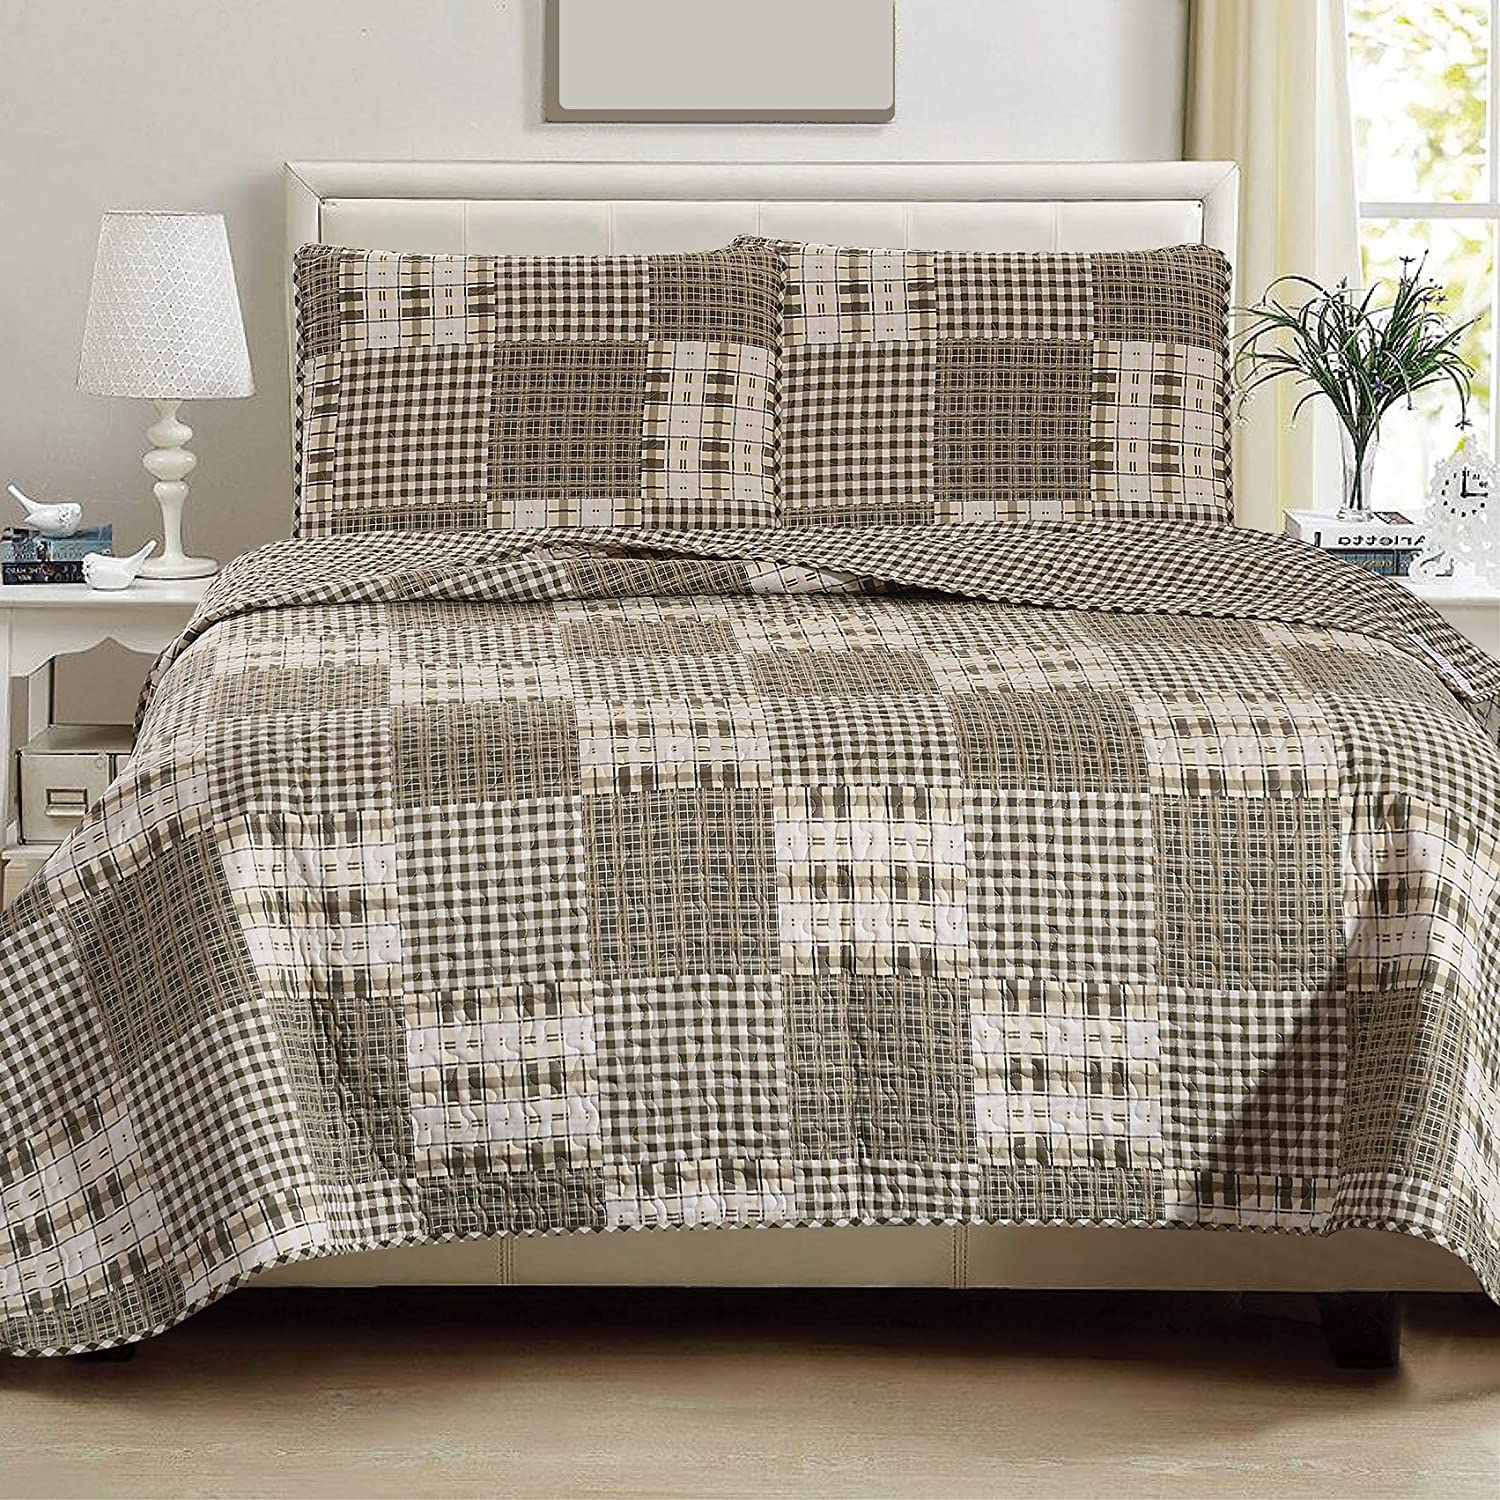 Great Bay Home 3-Piece Lodge Quilt Set with Shams. Durable Cabin Bedspread and Shams with Rustic Printed Pattern. Stonehurst Collection By Brand. (Twin)